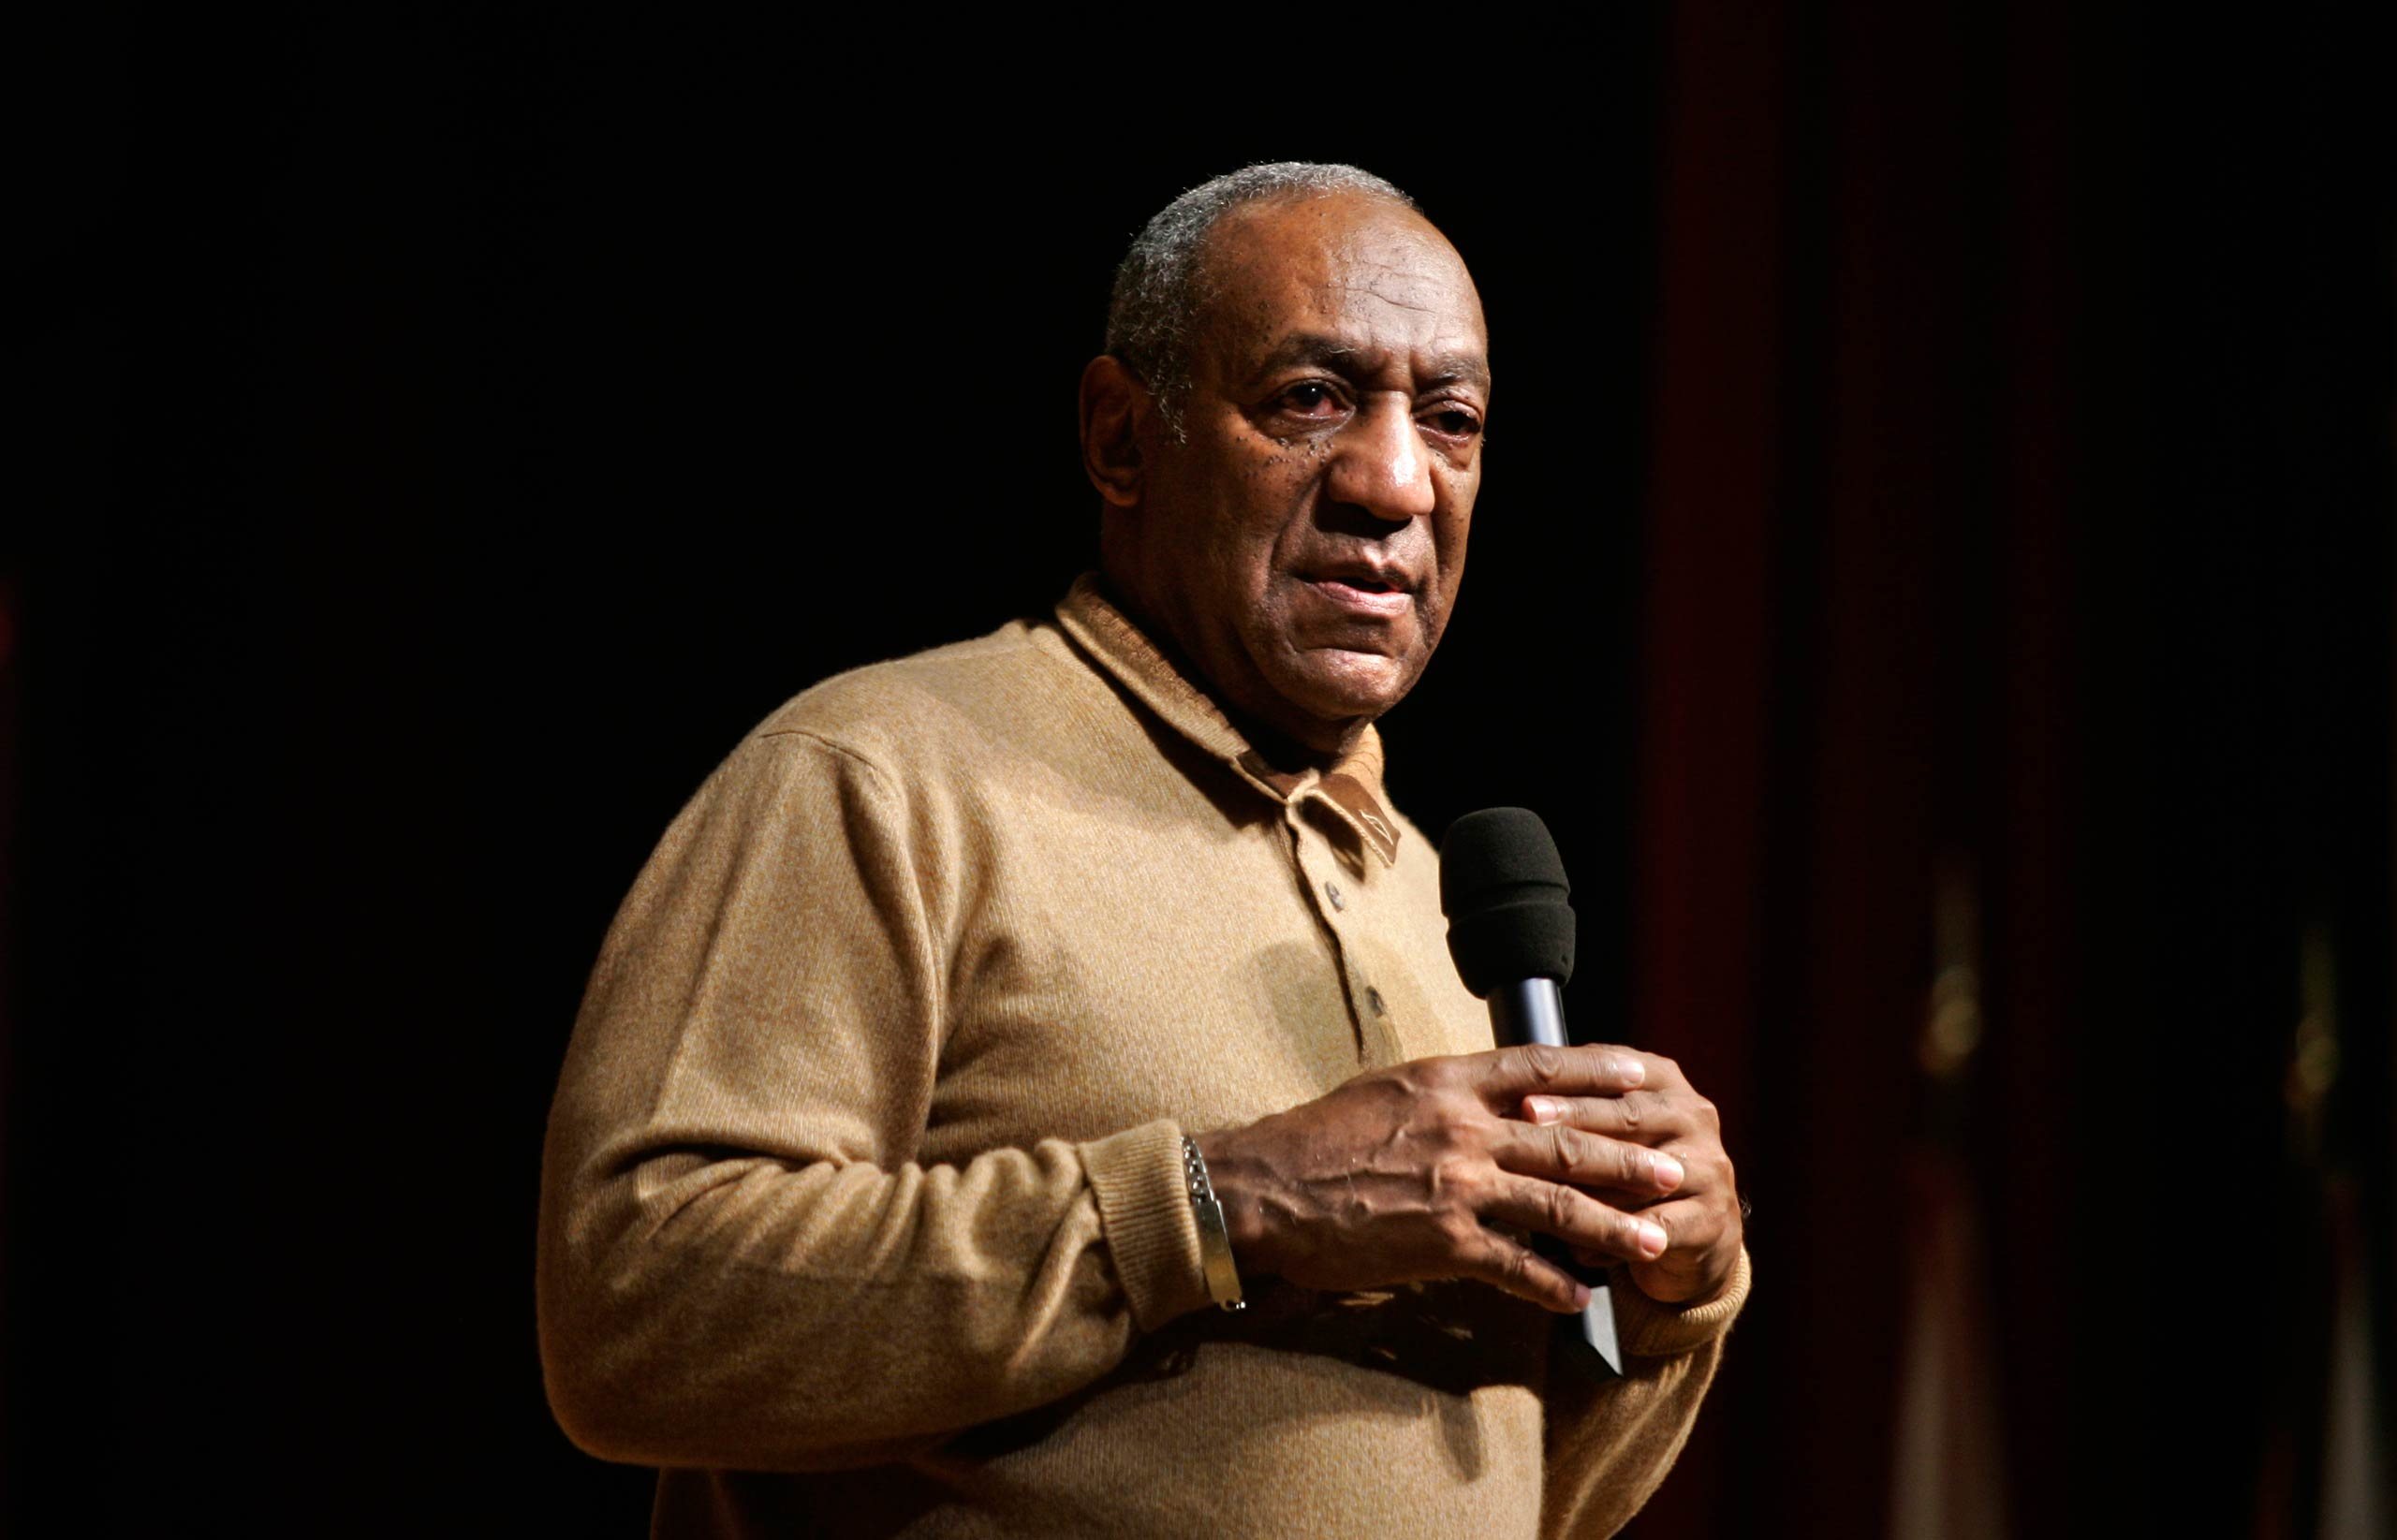 Bill Cosby speaks to an audience on the campus of the University of the District of Columbia in 2006, in Washington D.C.